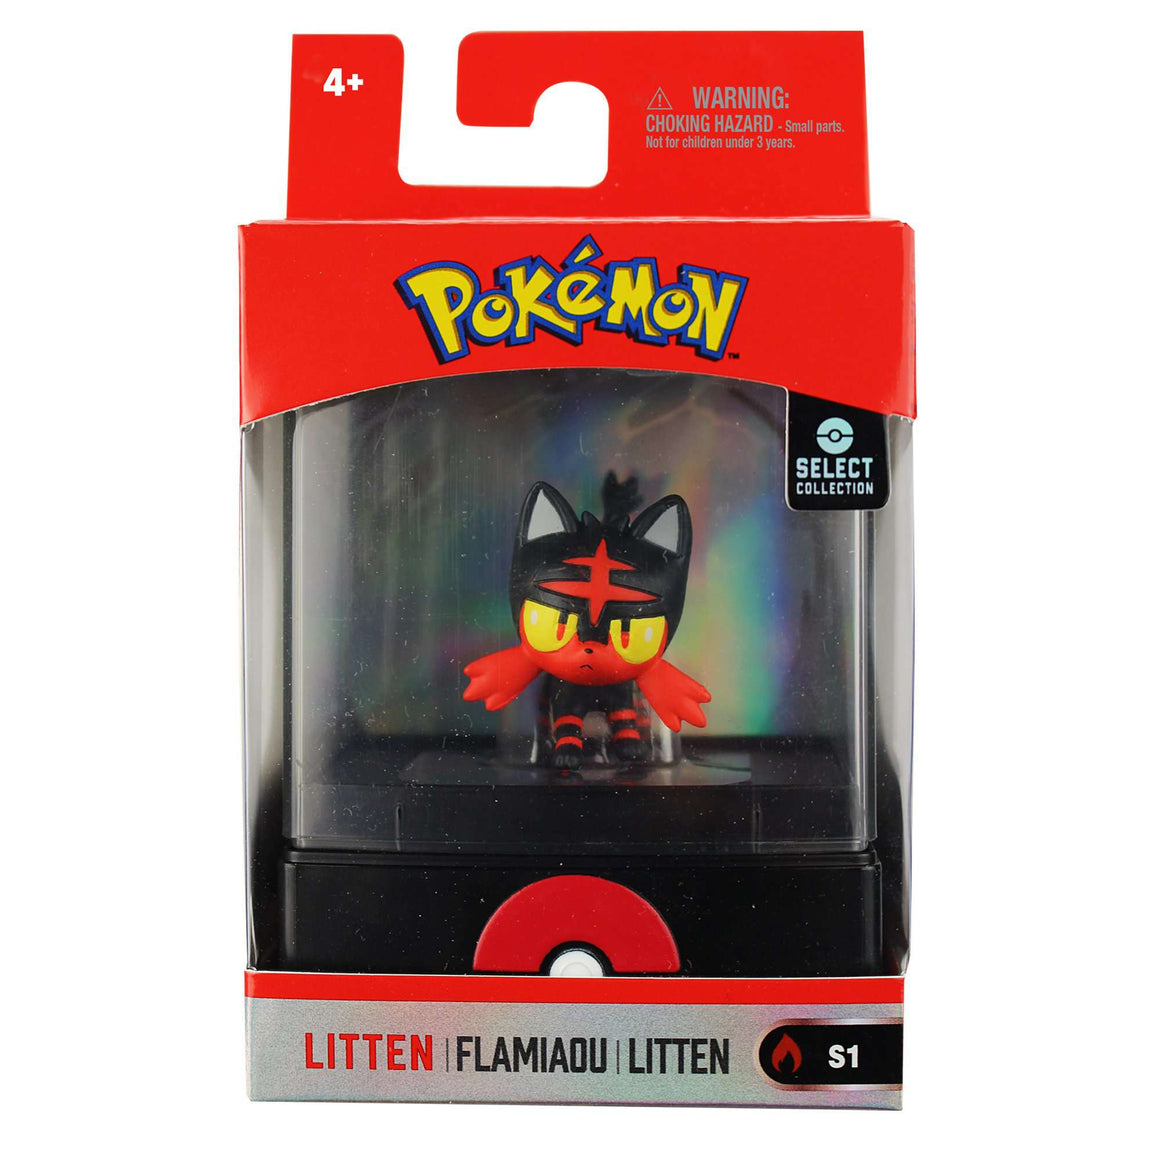 Pokémon Select Collection - Litten